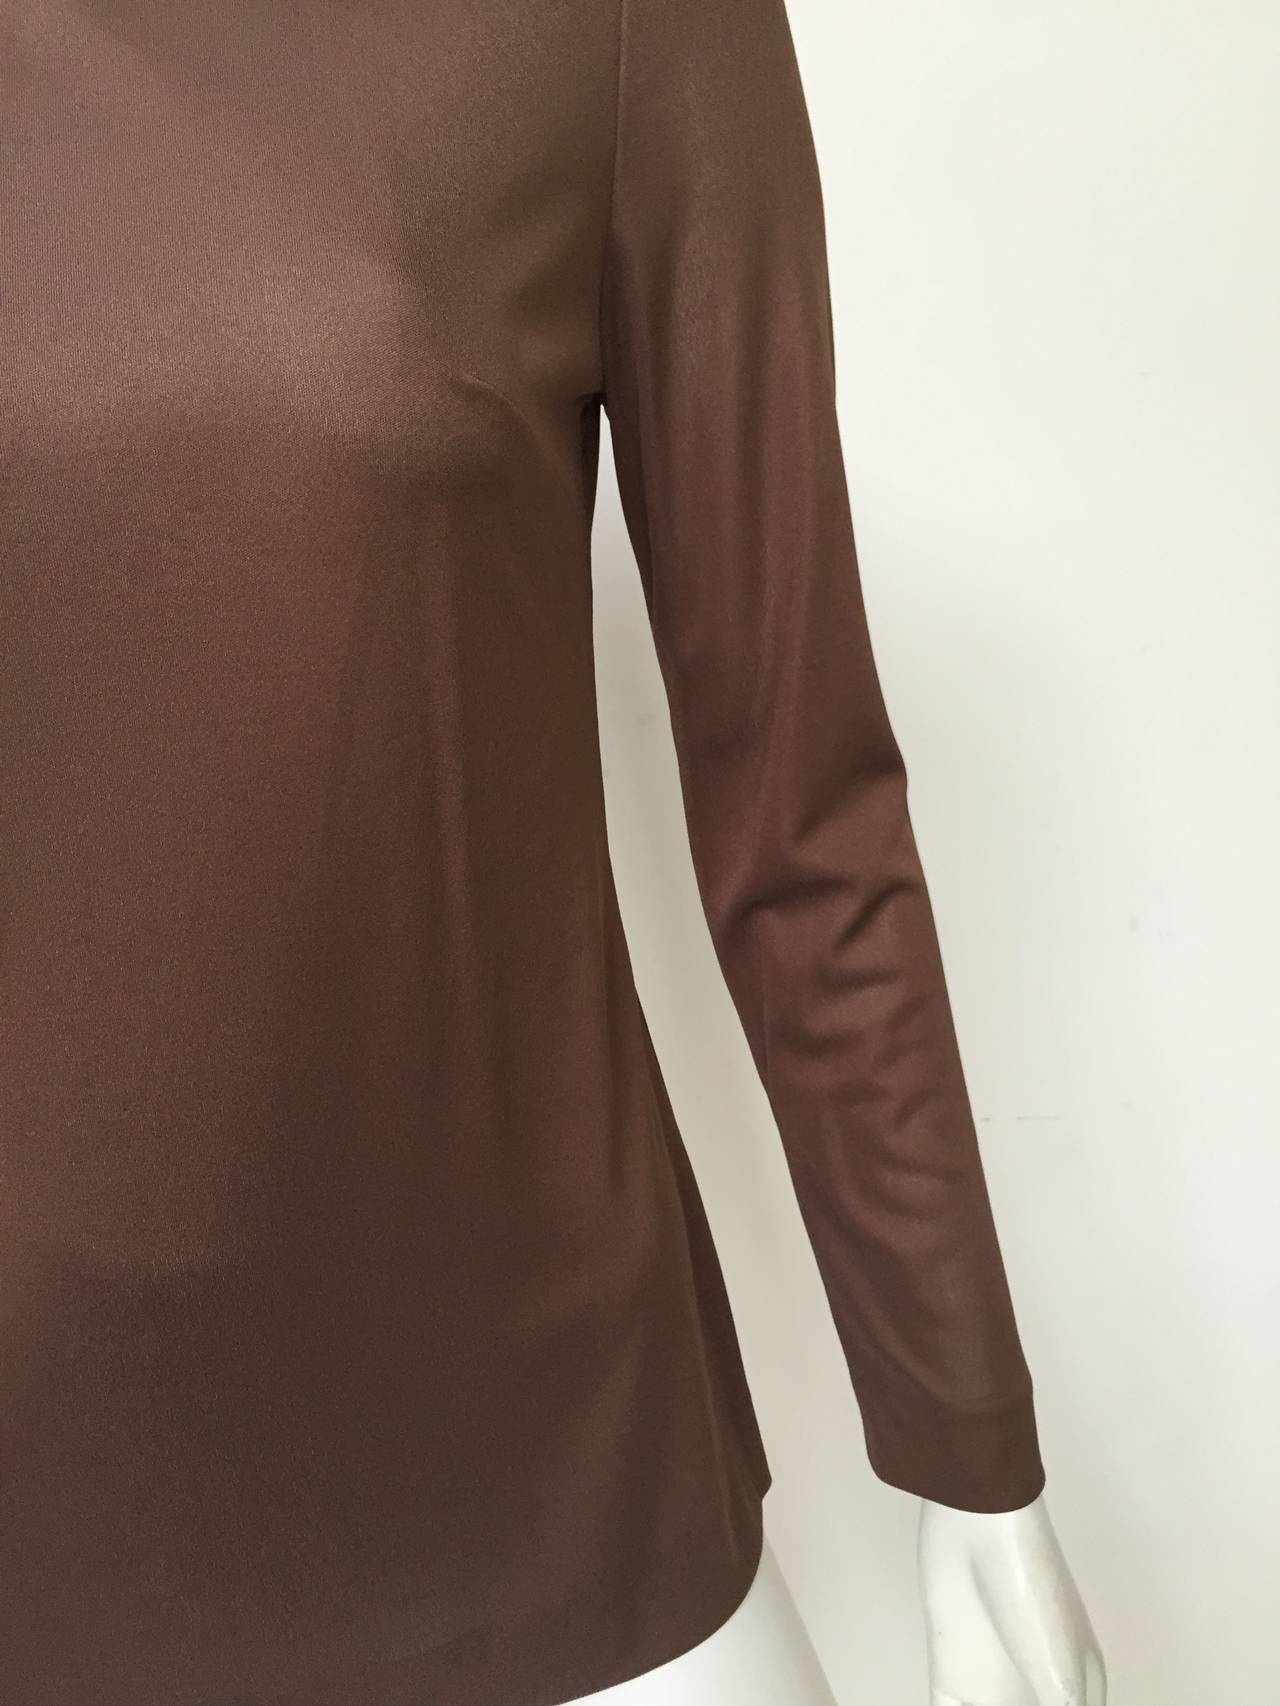 Emilio Pucci 70s Silk Brown Blouse Size 6. 3